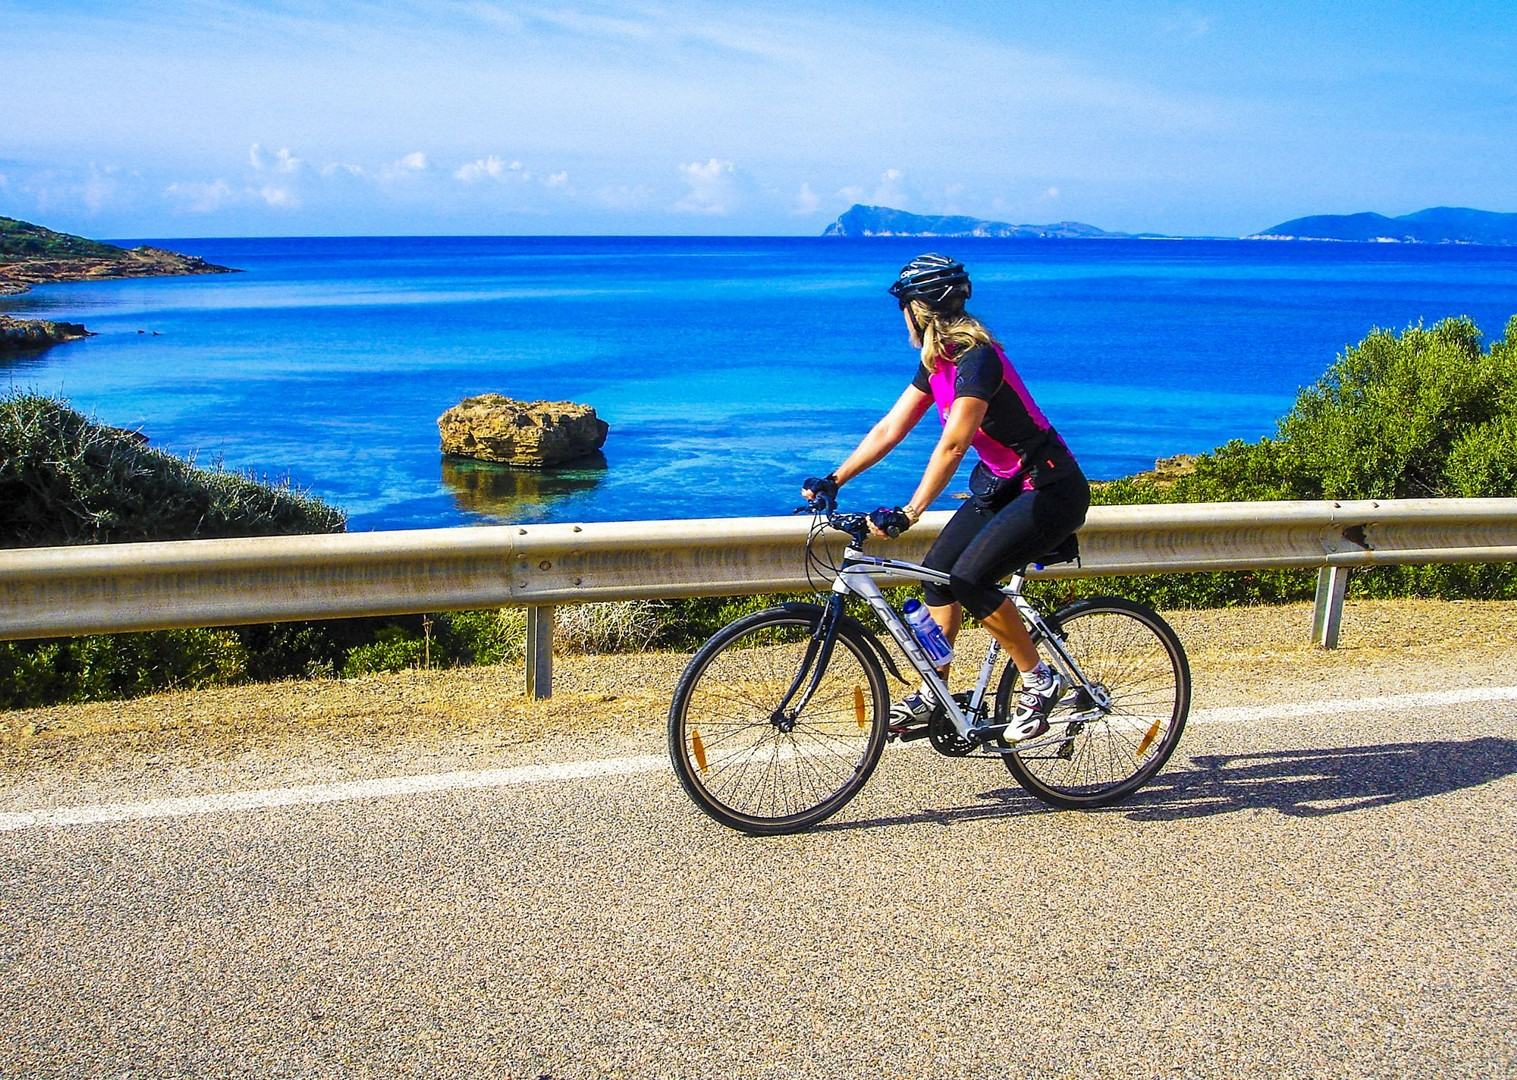 saddle-skedaddle-leisure-cycling-self-guided-sardinia.jpg - Italy - Sardinia - Island Flavours - Self-Guided Leisure Cycling Holiday - Leisure Cycling